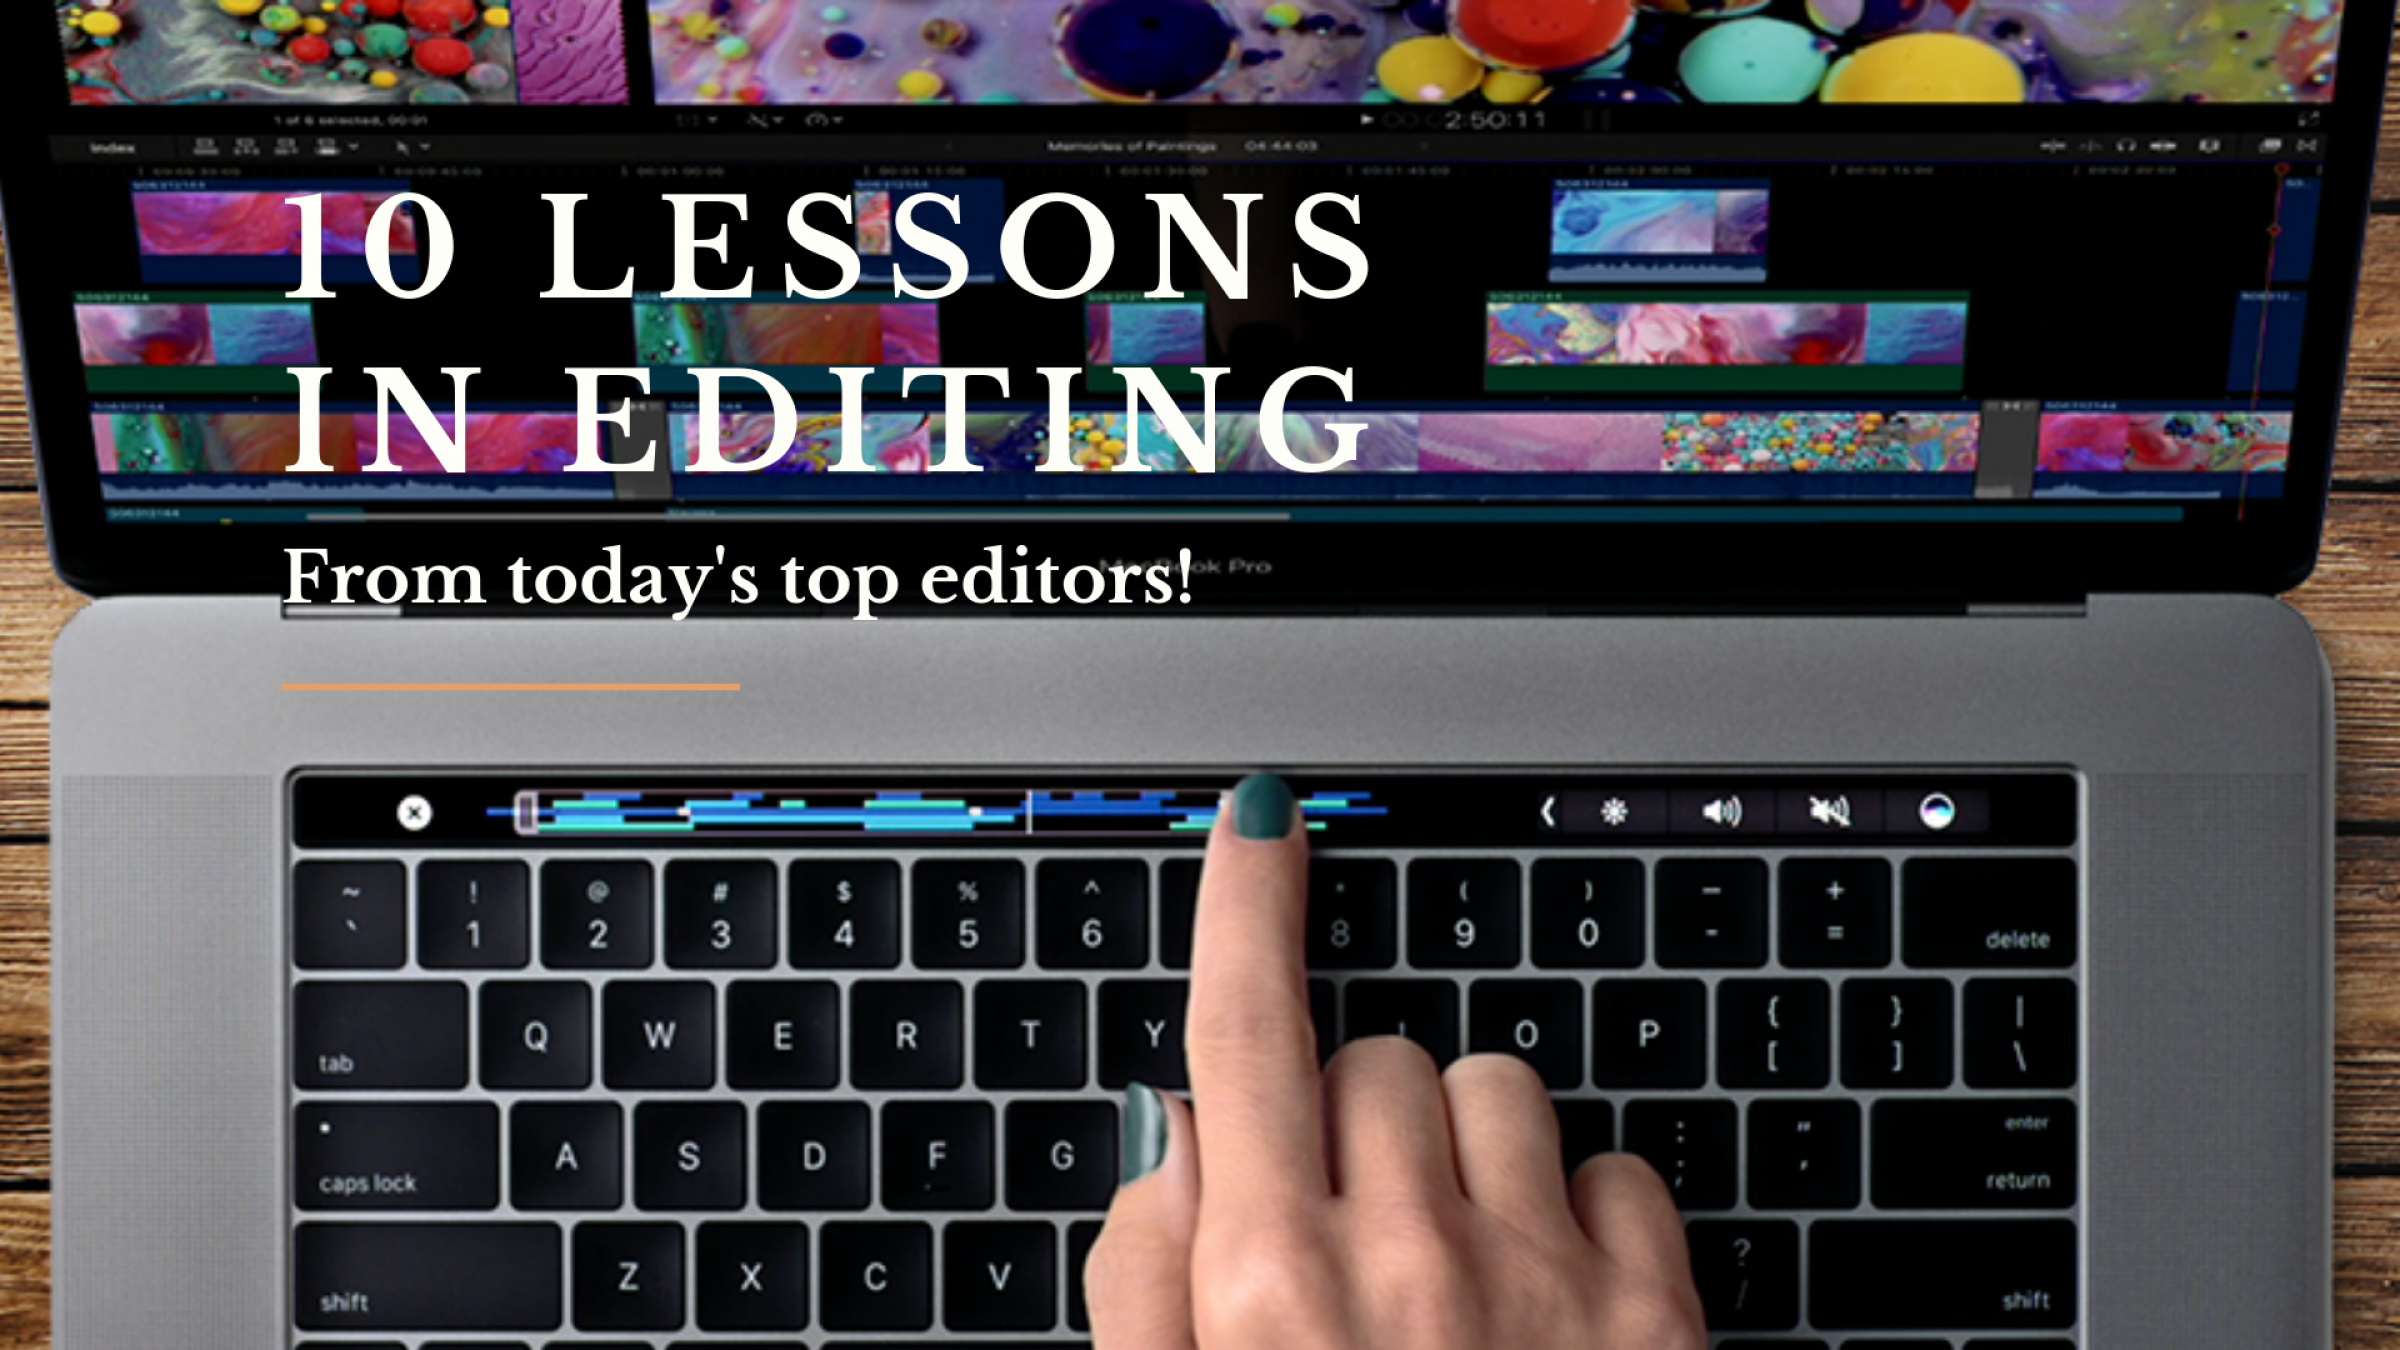 10 Lessons from Today's Top Film Editors